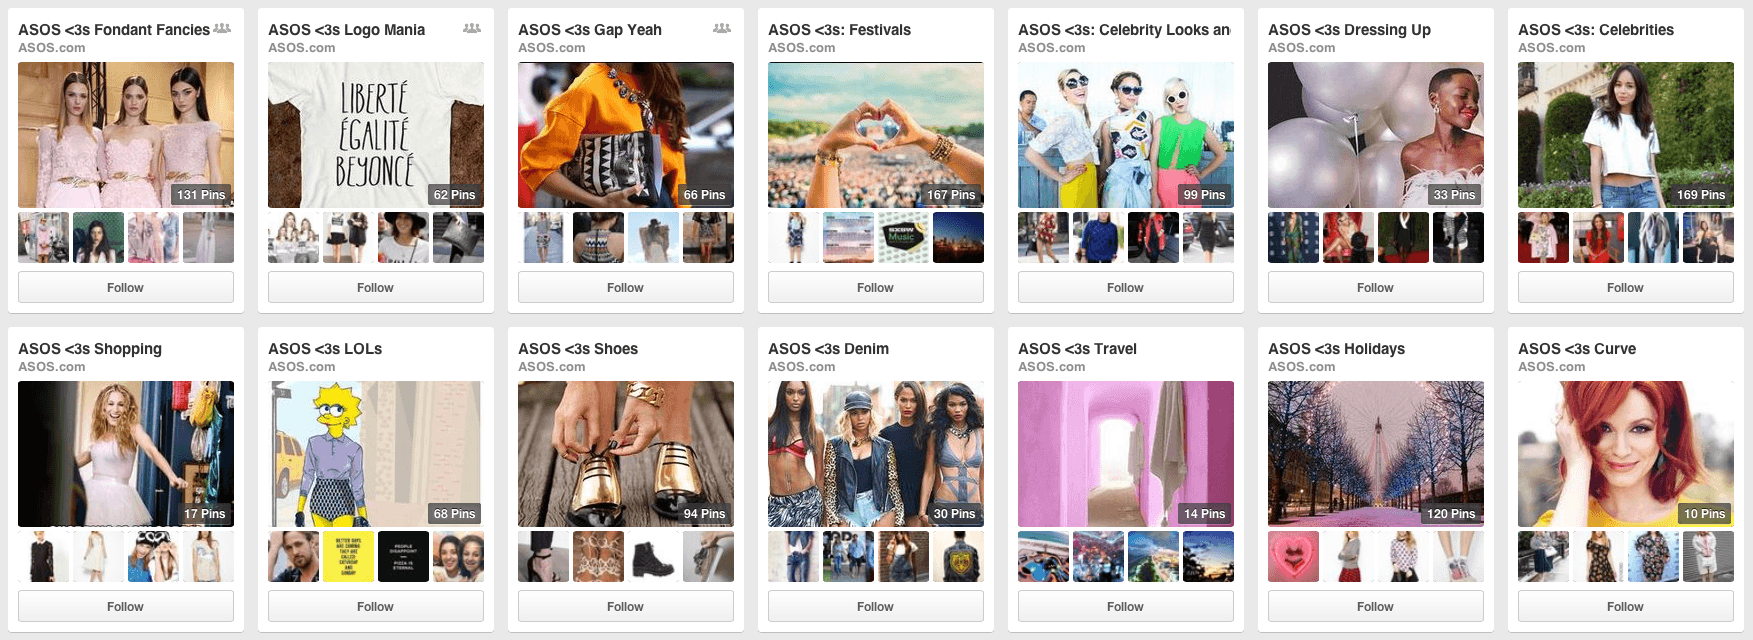 Pinterest Boards for ASOS - Social Media